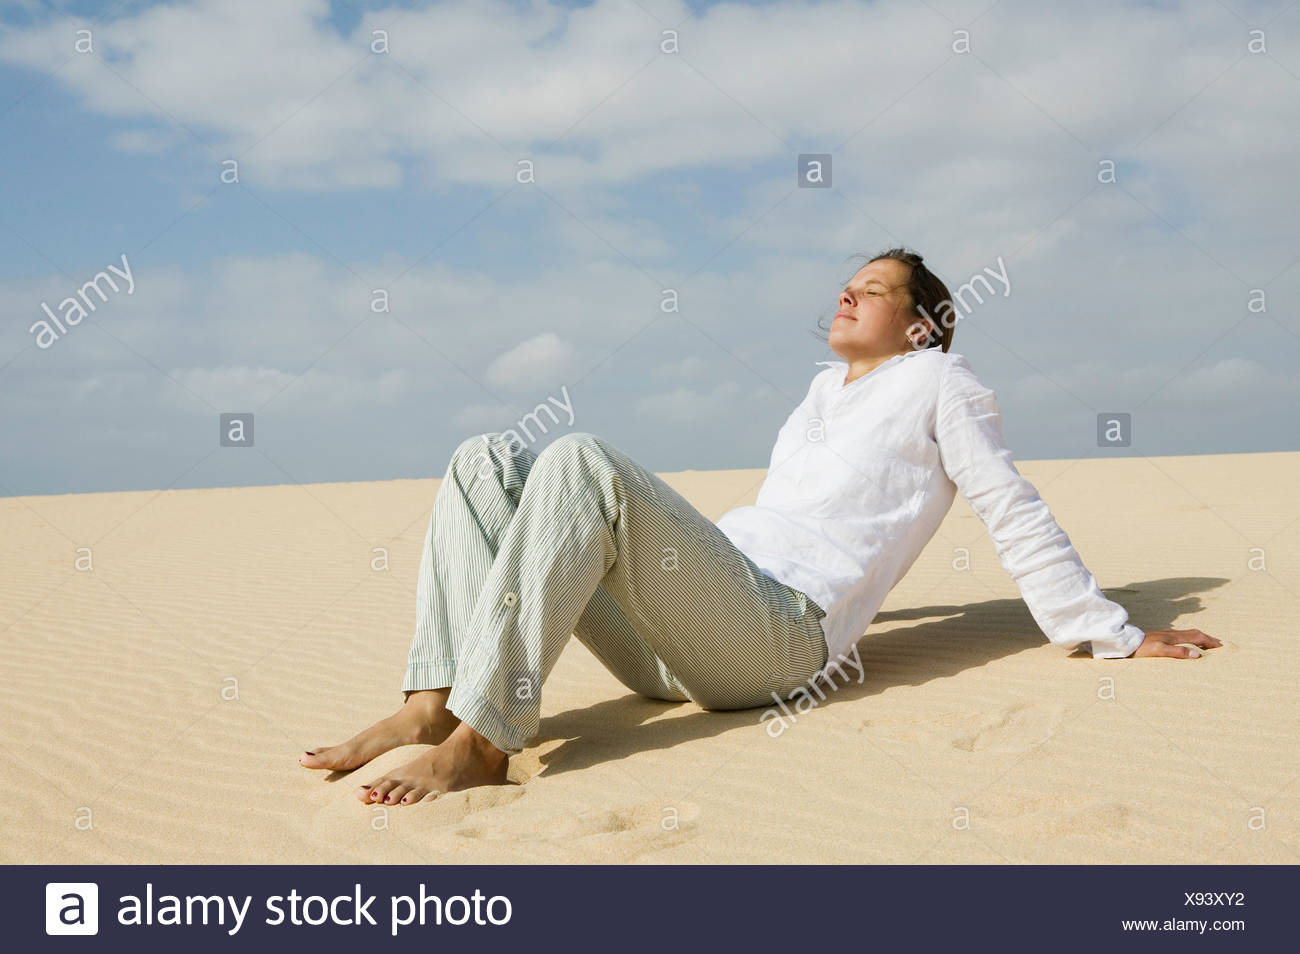 young woman relaxing on sandy beach - Stock Image